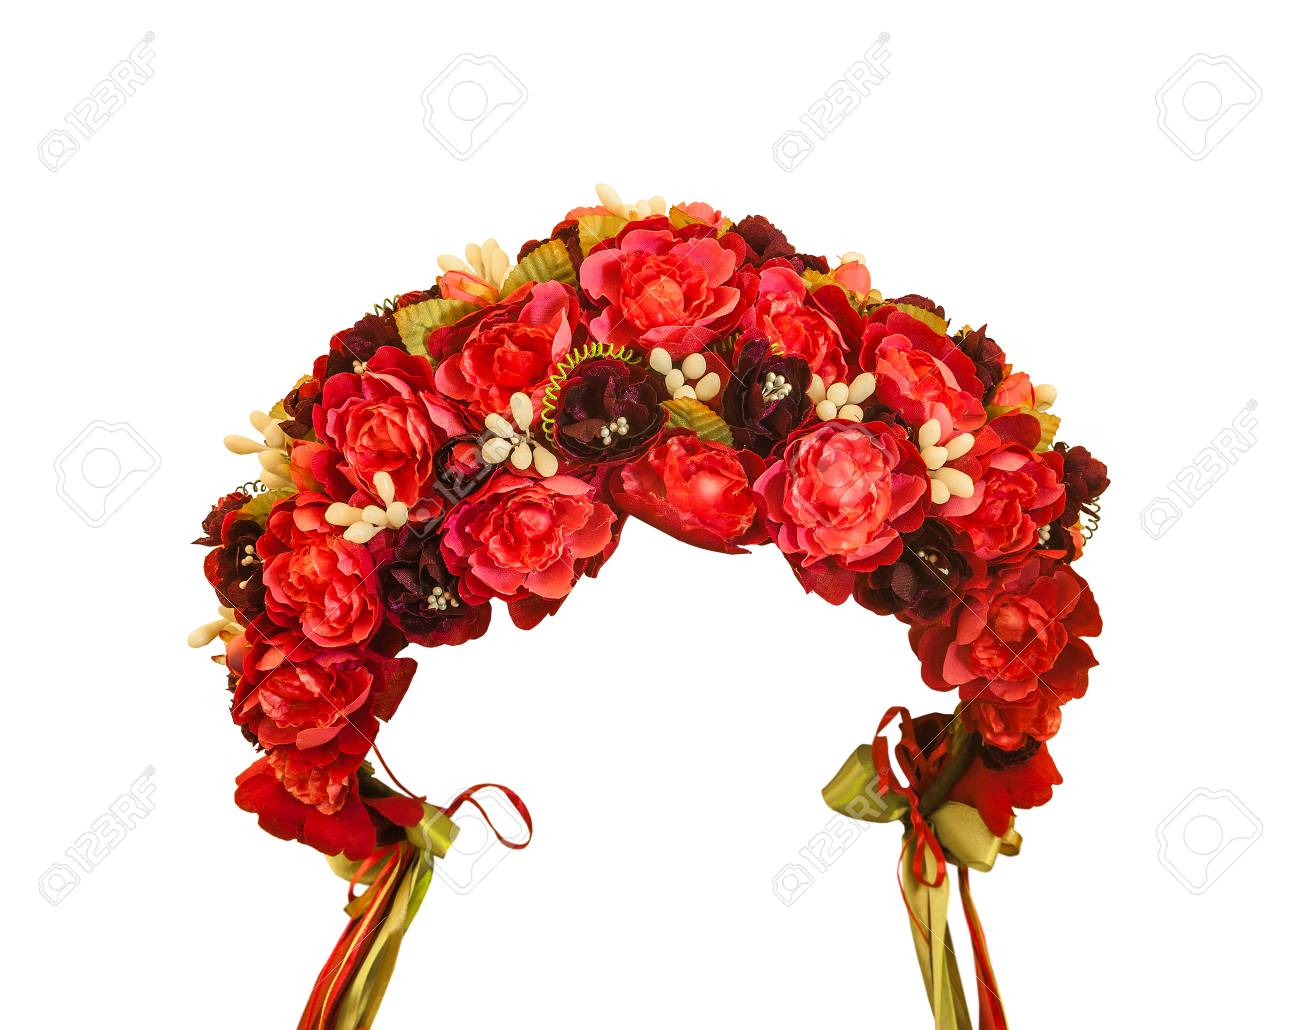 Ukrainian Wreath Of Red And White Flowers With Ribbons On White